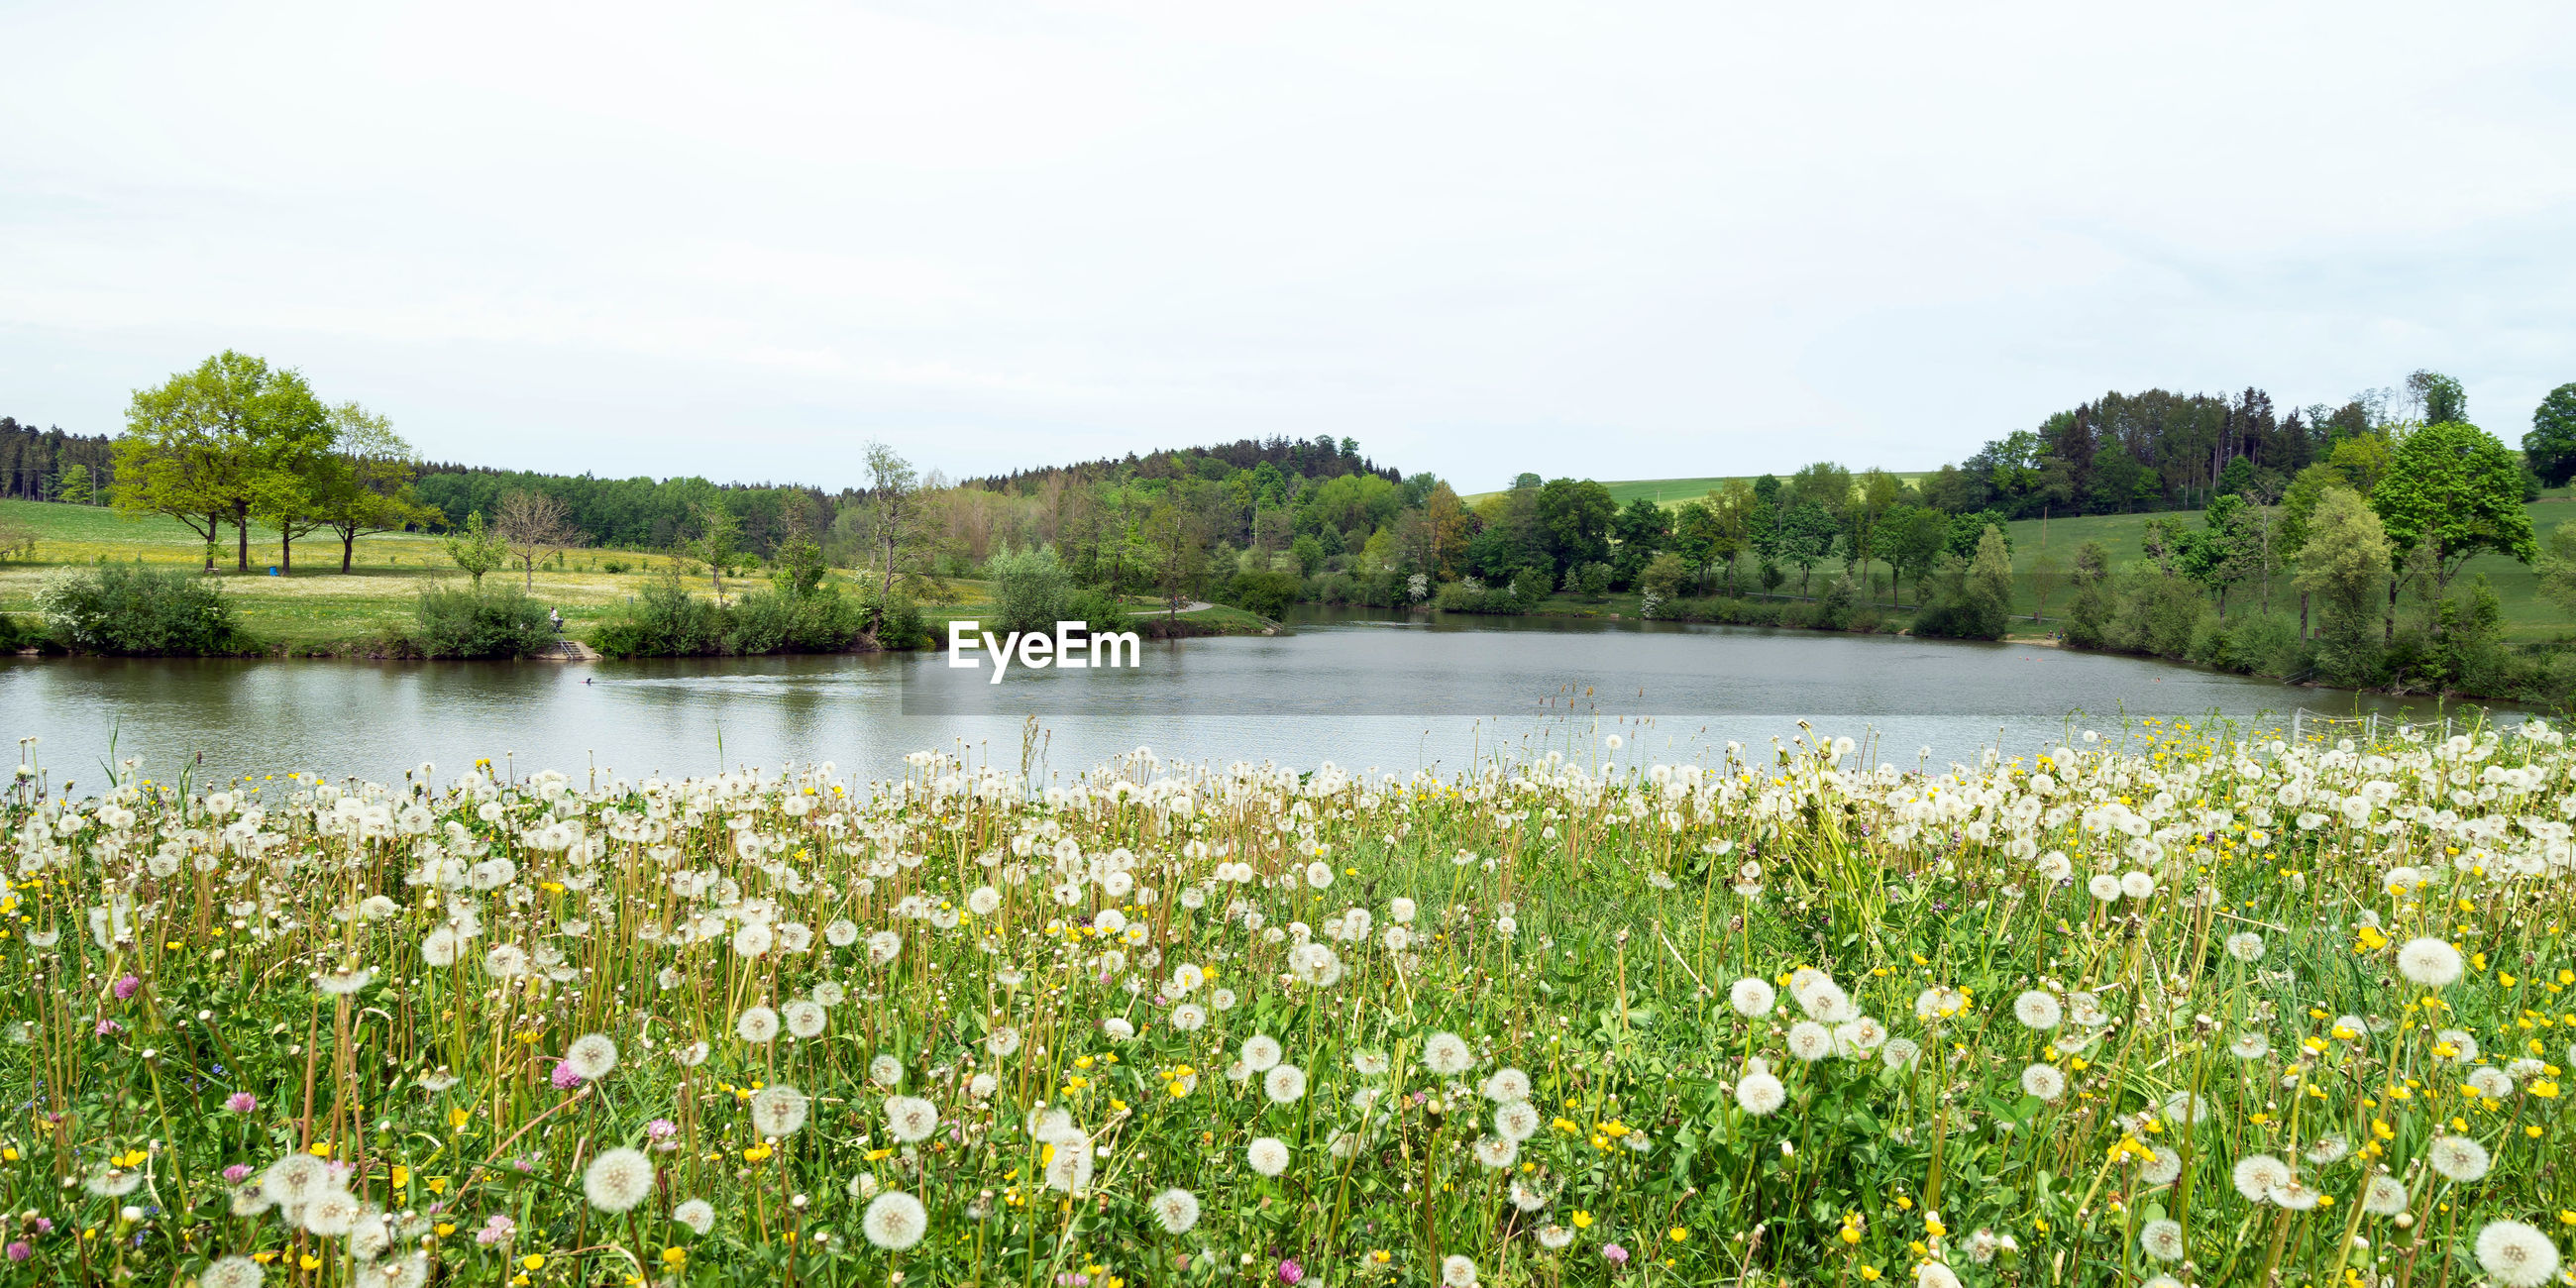 SCENIC VIEW OF LAKE AND PLANTS AGAINST SKY